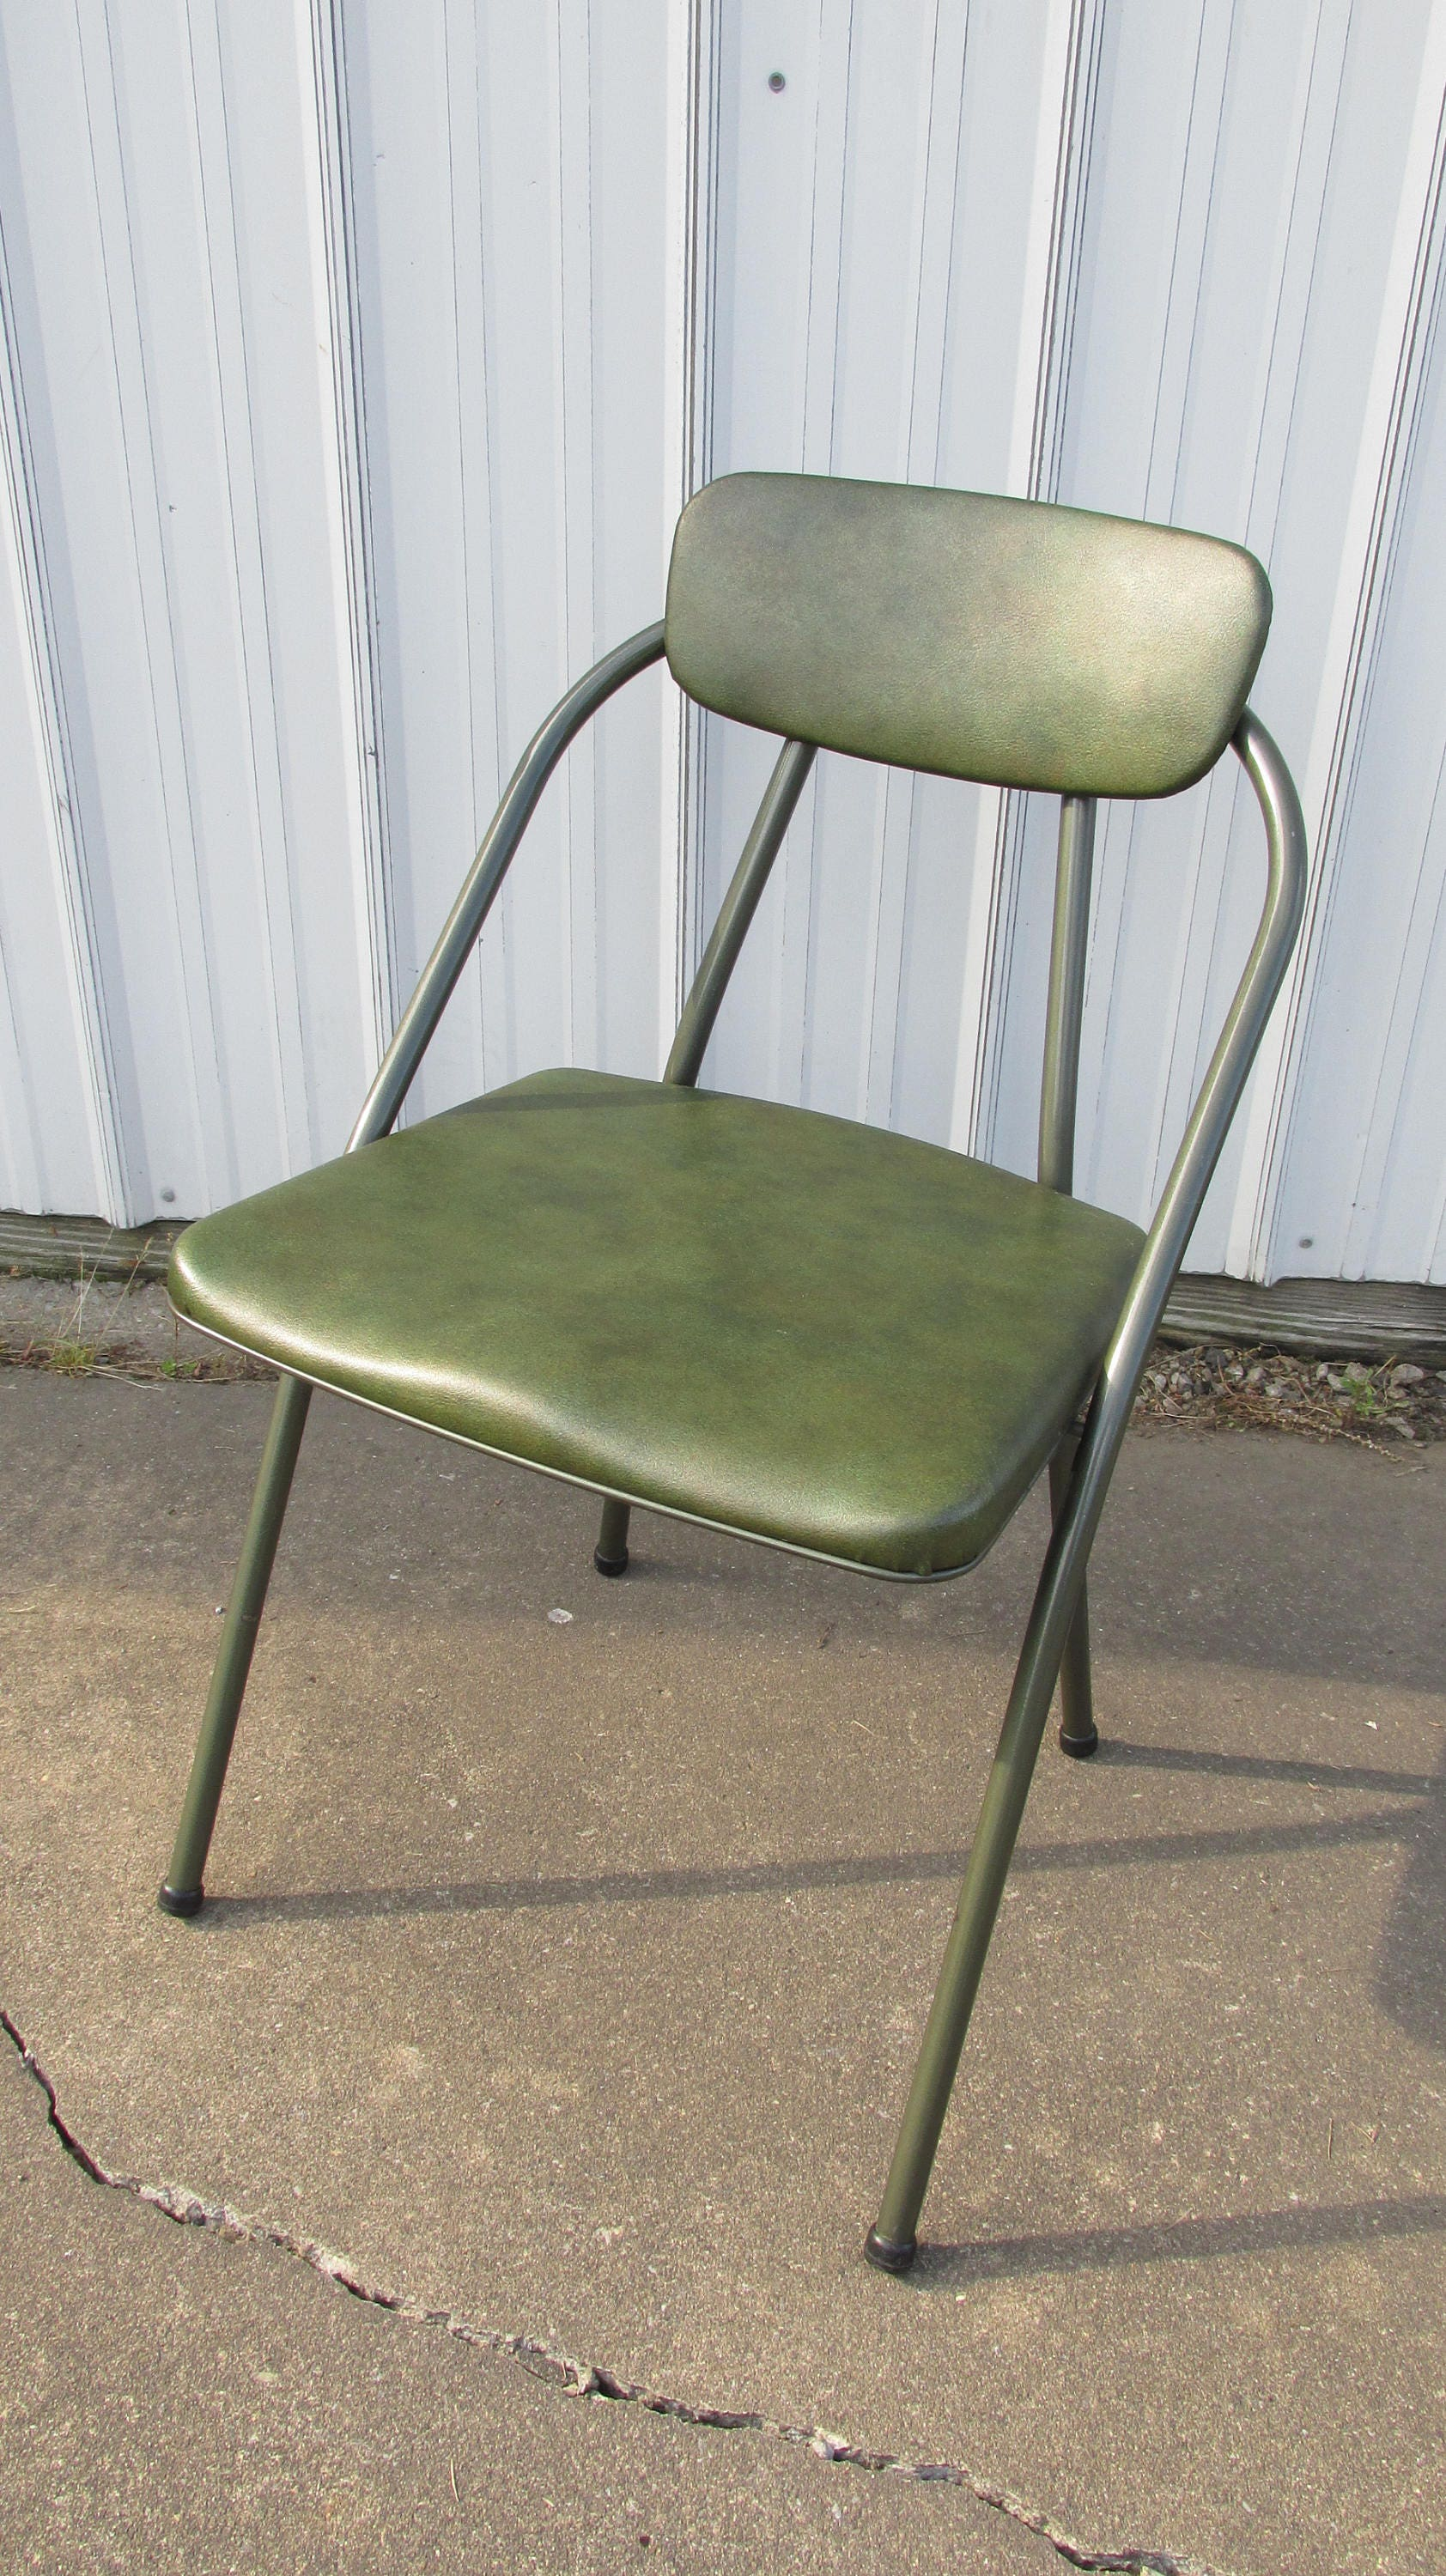 Vintage Hamilton Cosco Stylaire Green Folding Chair from the